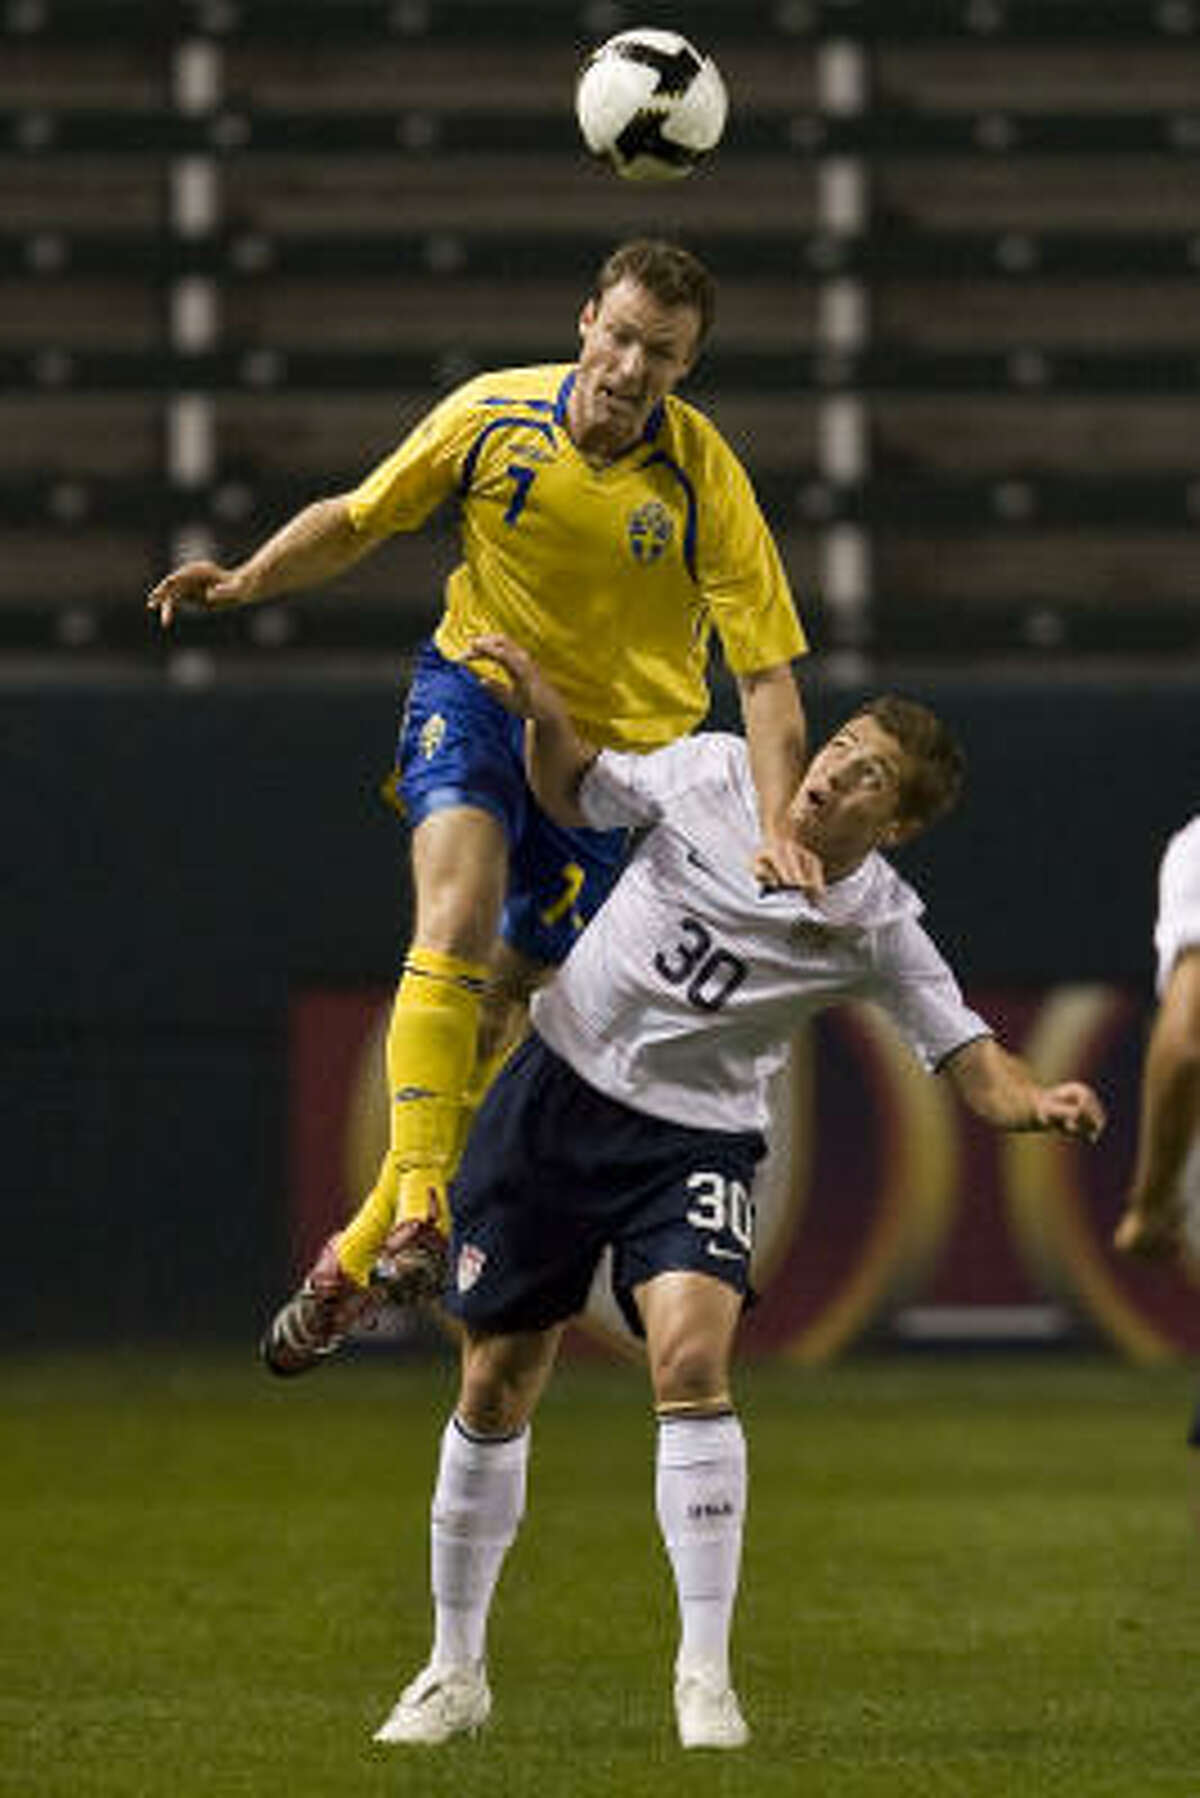 Sweden defender Markus Jonsson, top, goes up for the ball over United States midfielder Robbie Rogers in the first period.